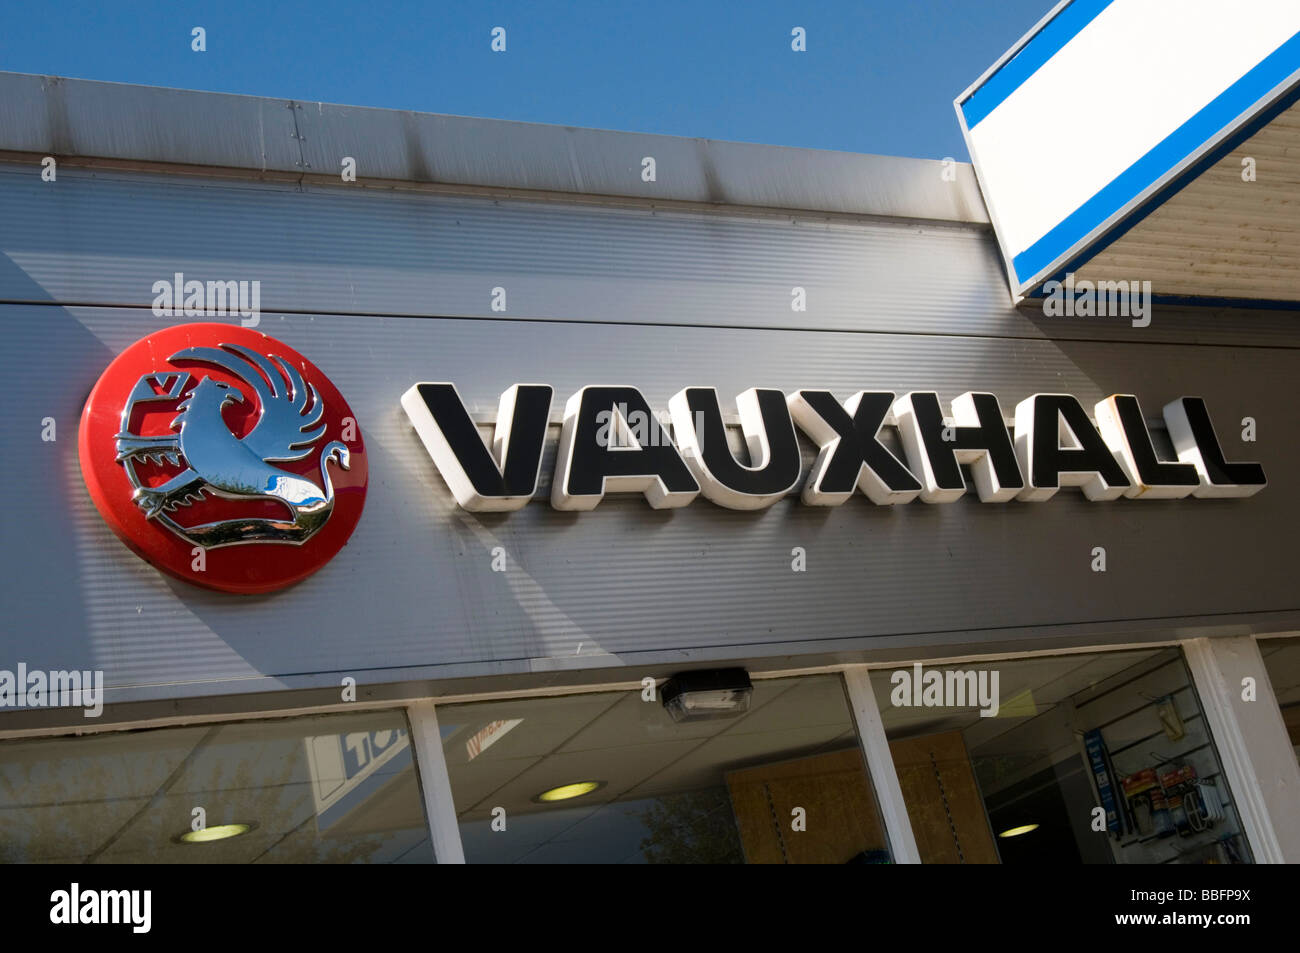 Vauxhall car cars gm general motors magna european brand for General motors cars brands